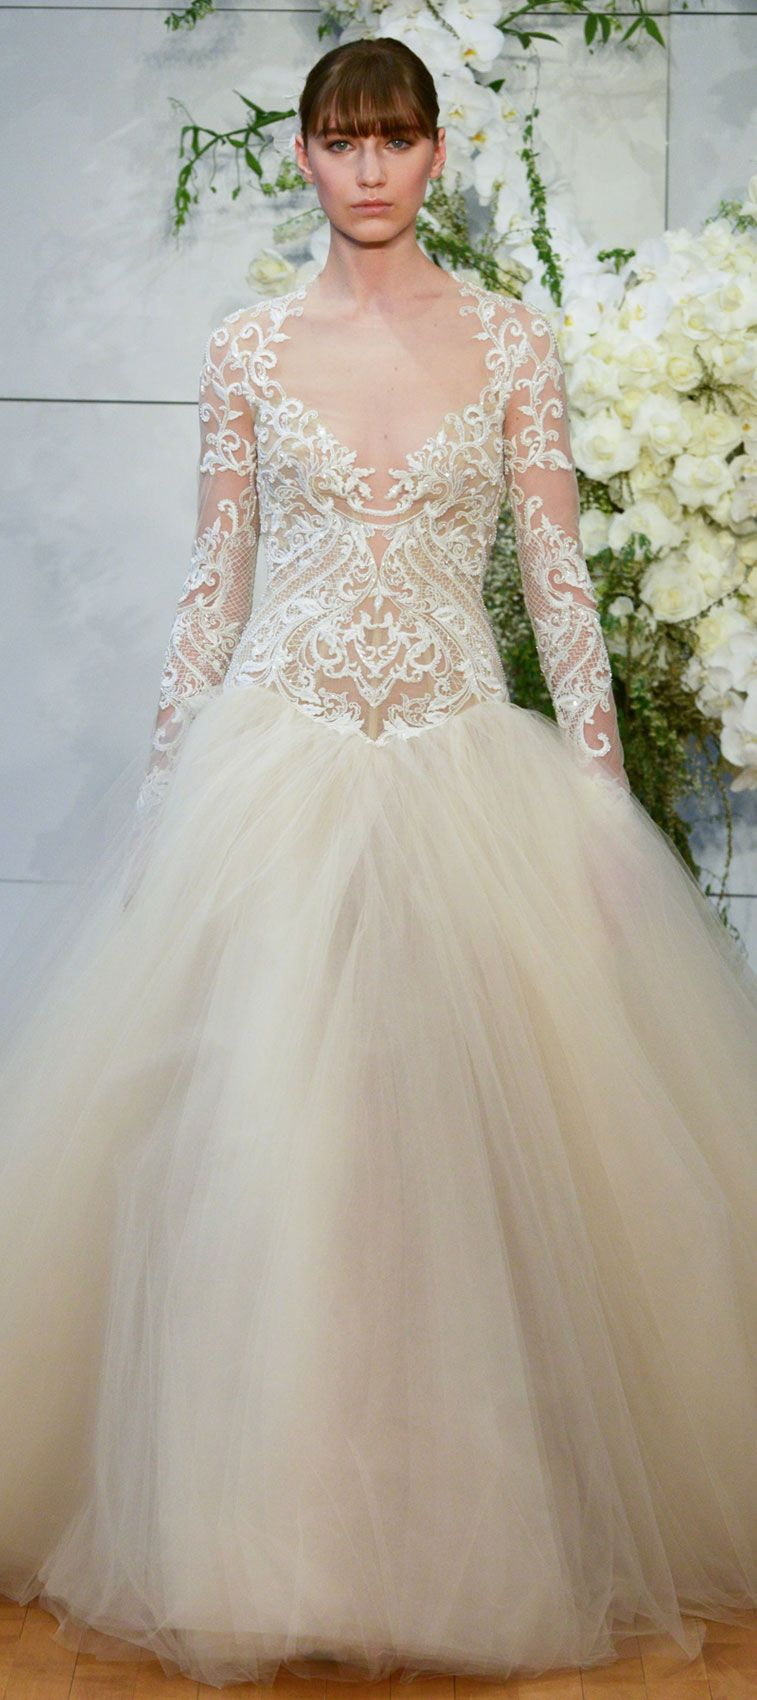 Monique Lhuillier Spring 2018 Wedding Dresses - Fabmood | Wedding ...